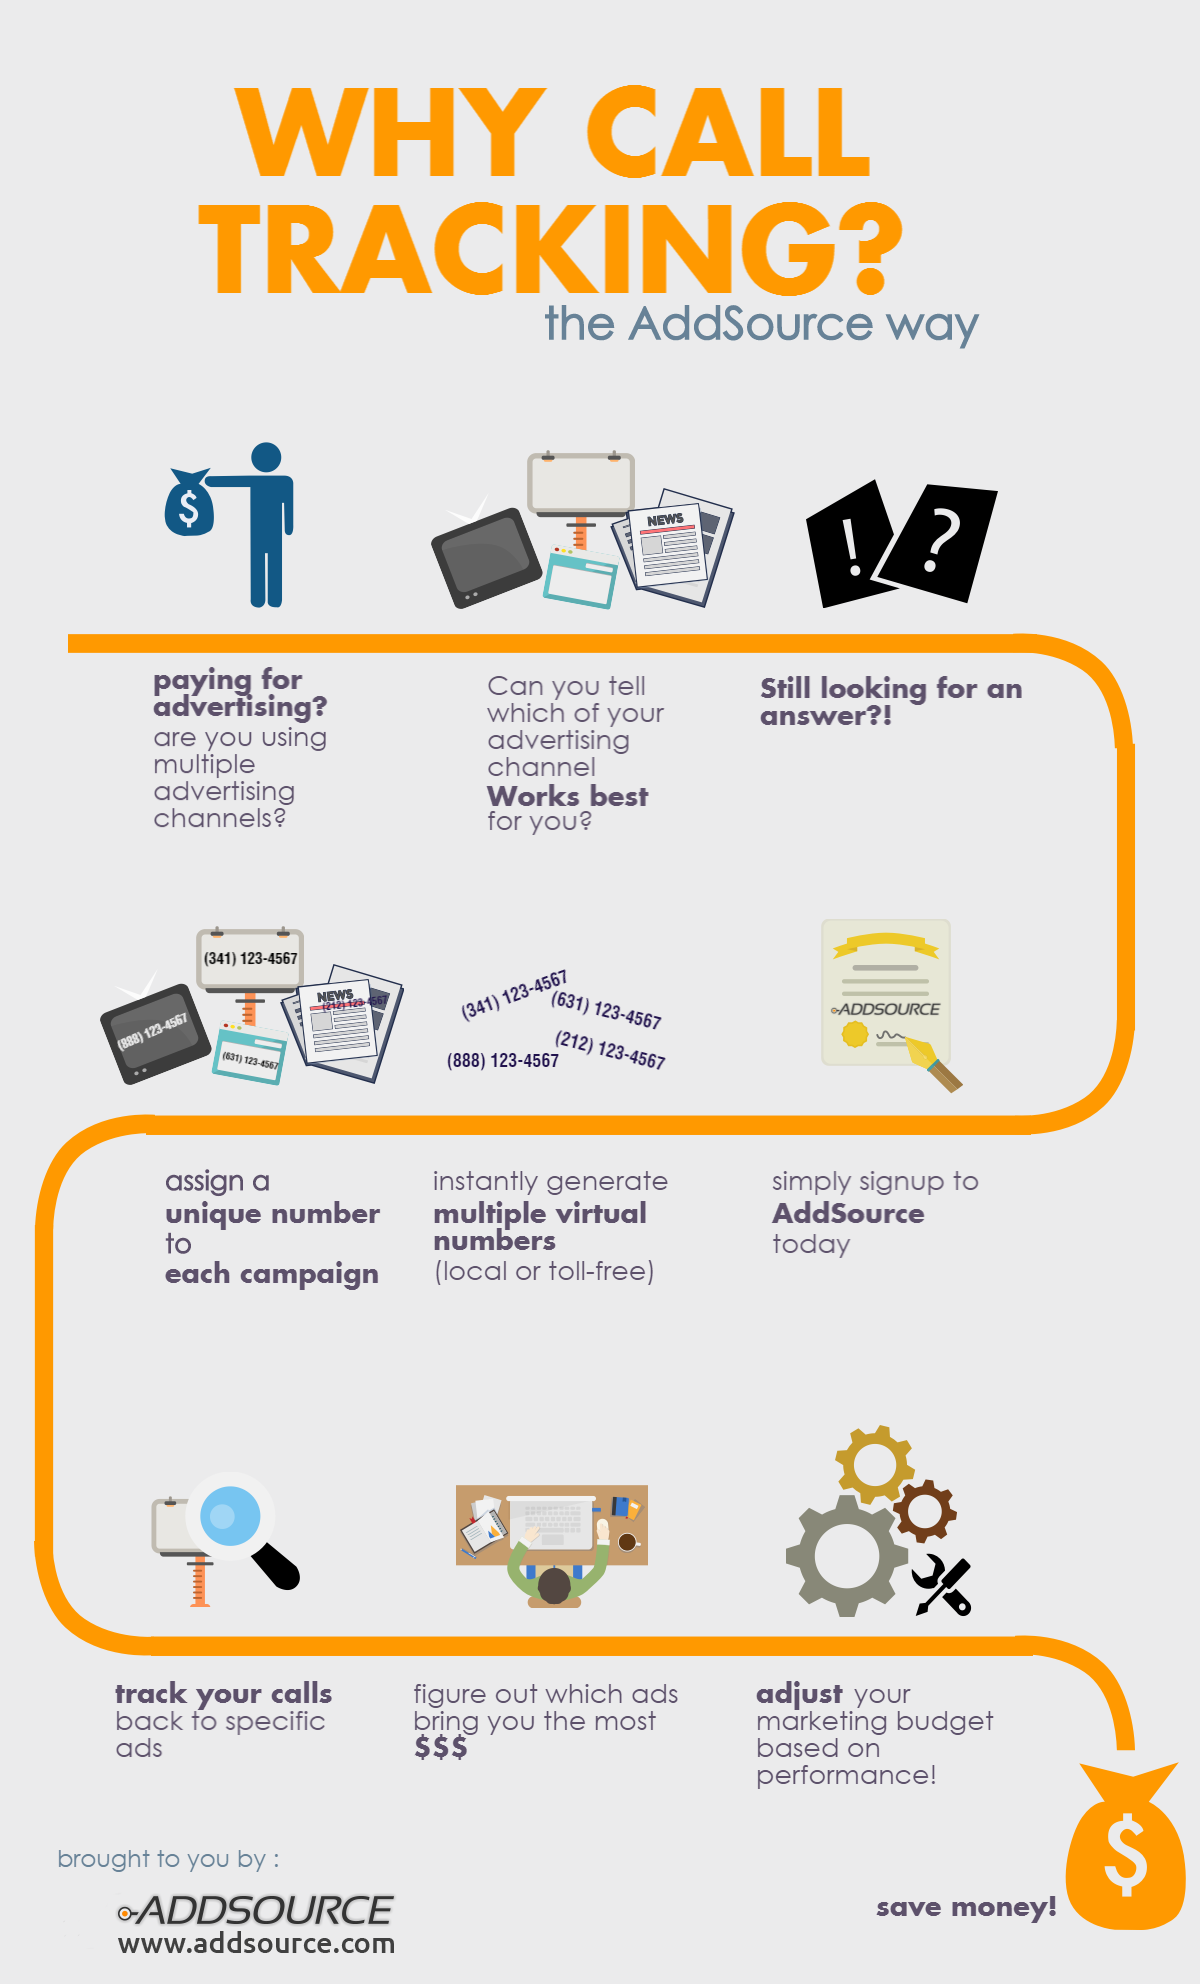 Why Call Tracking infographic